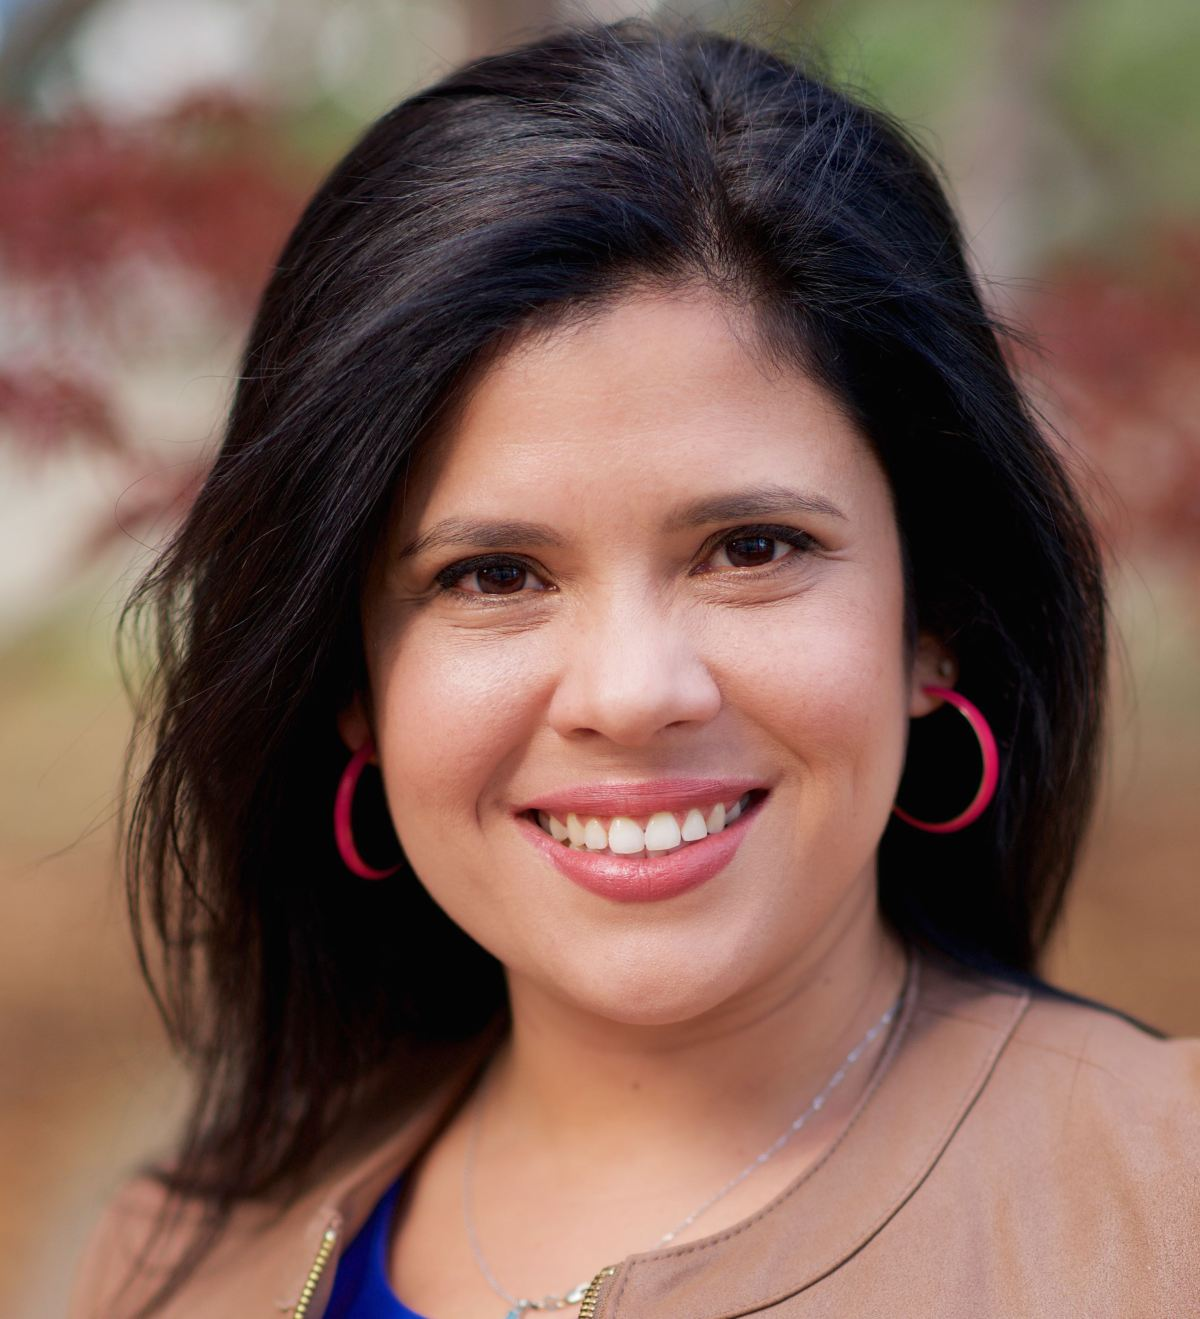 Alejandra St. Guillen: City of Boston Council At Large Candidate